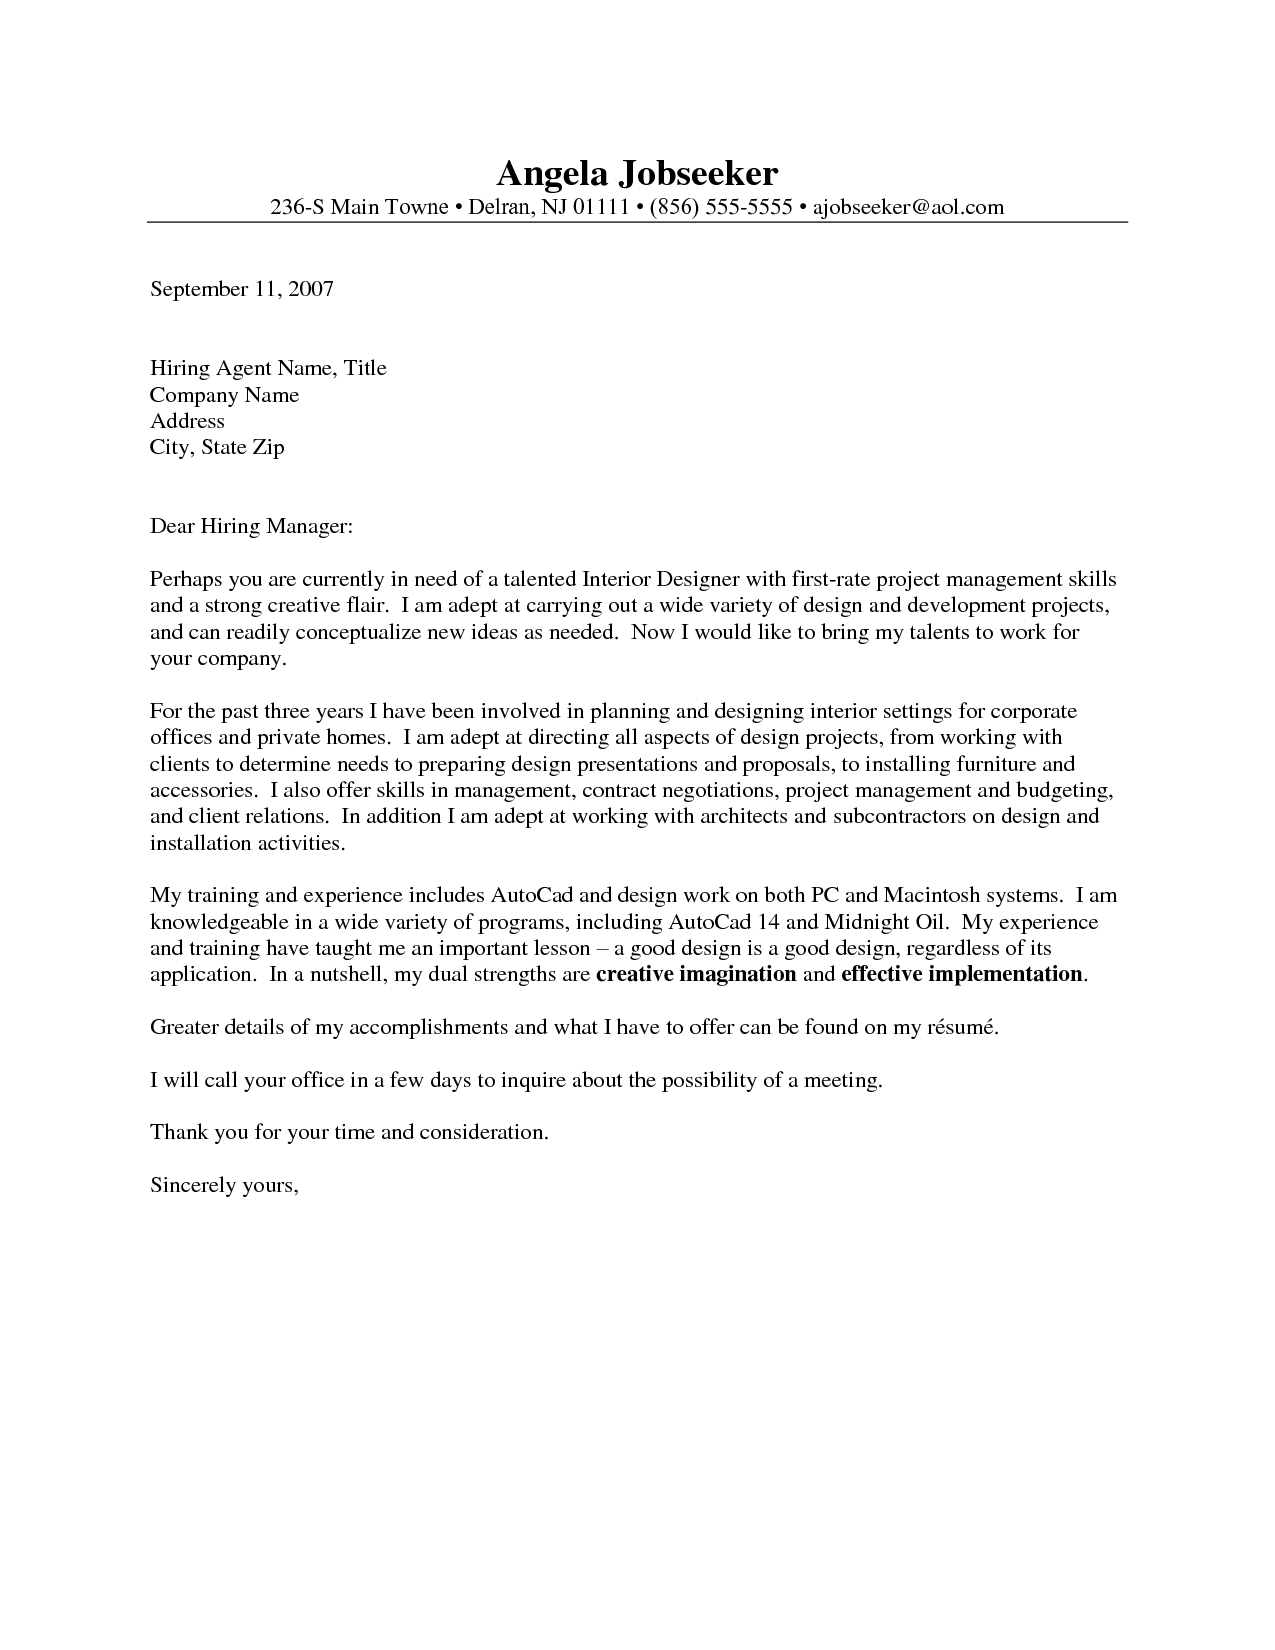 Mac Pages Cover Letter Template Examples | Letter Template Collection